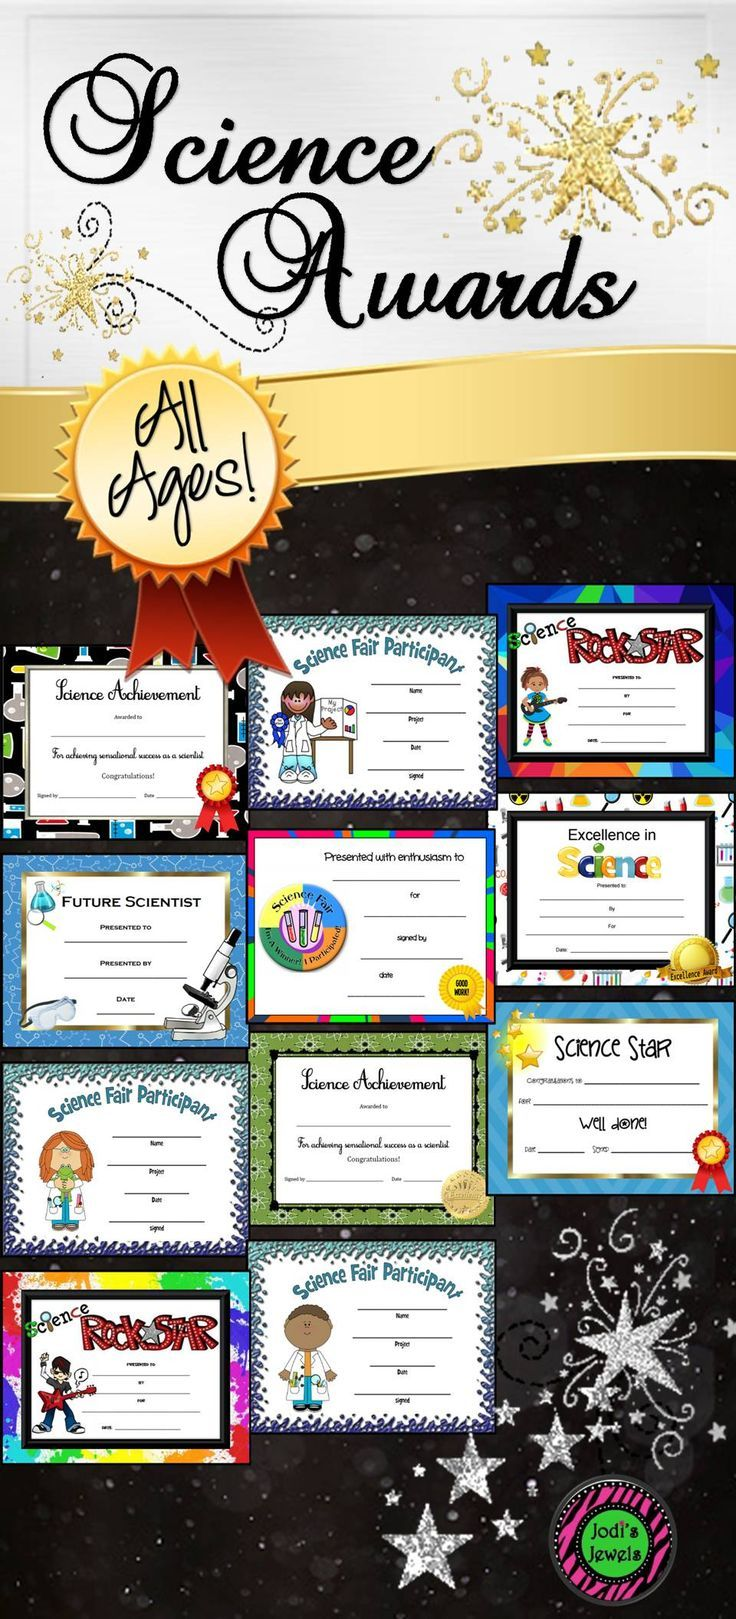 Acknowledge your science students' achievements with bright, beautiful award and participation certificates! Visit Jodi's Jewels today!